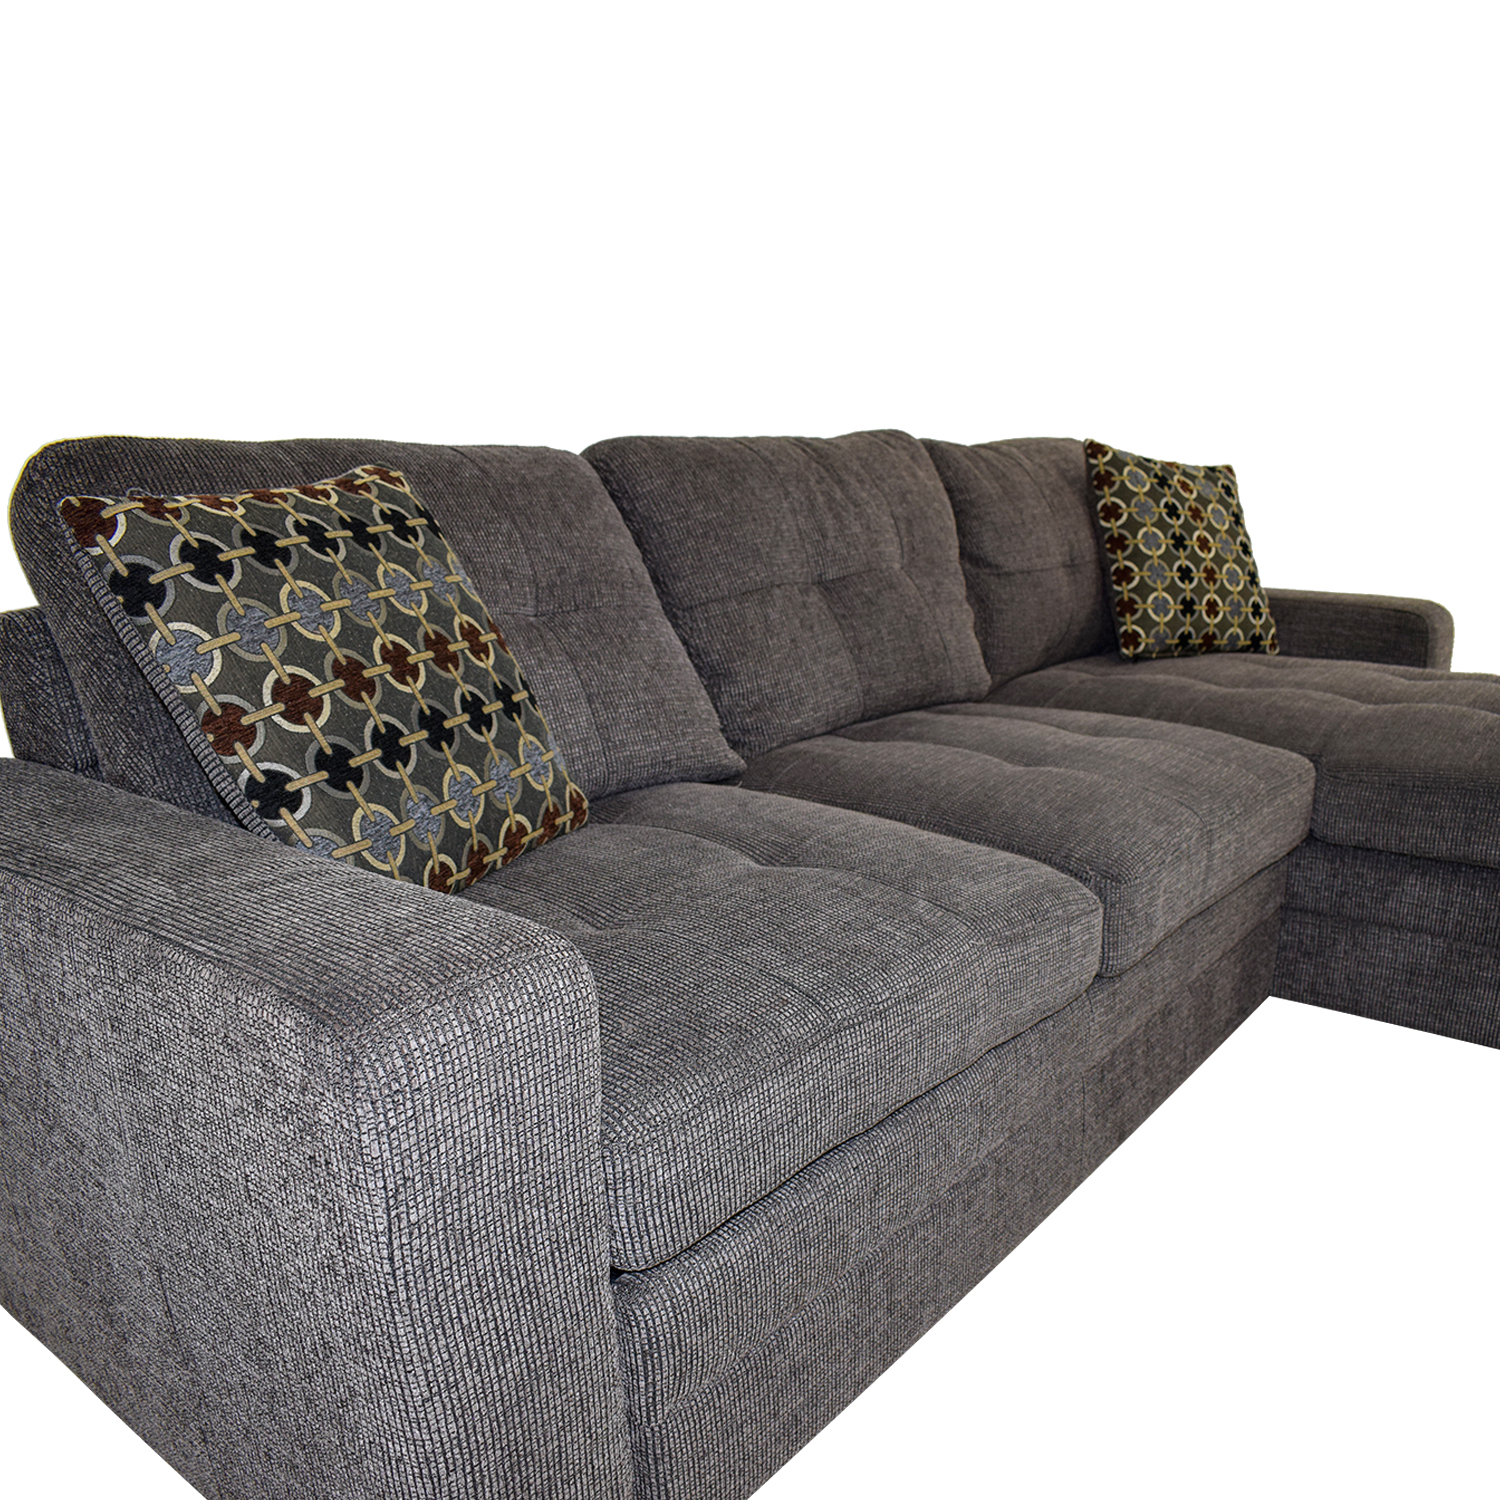 Amazing 45 Off Grey Tweed Twin To Full Sofabed Sectional With Storage Sofas Download Free Architecture Designs Scobabritishbridgeorg